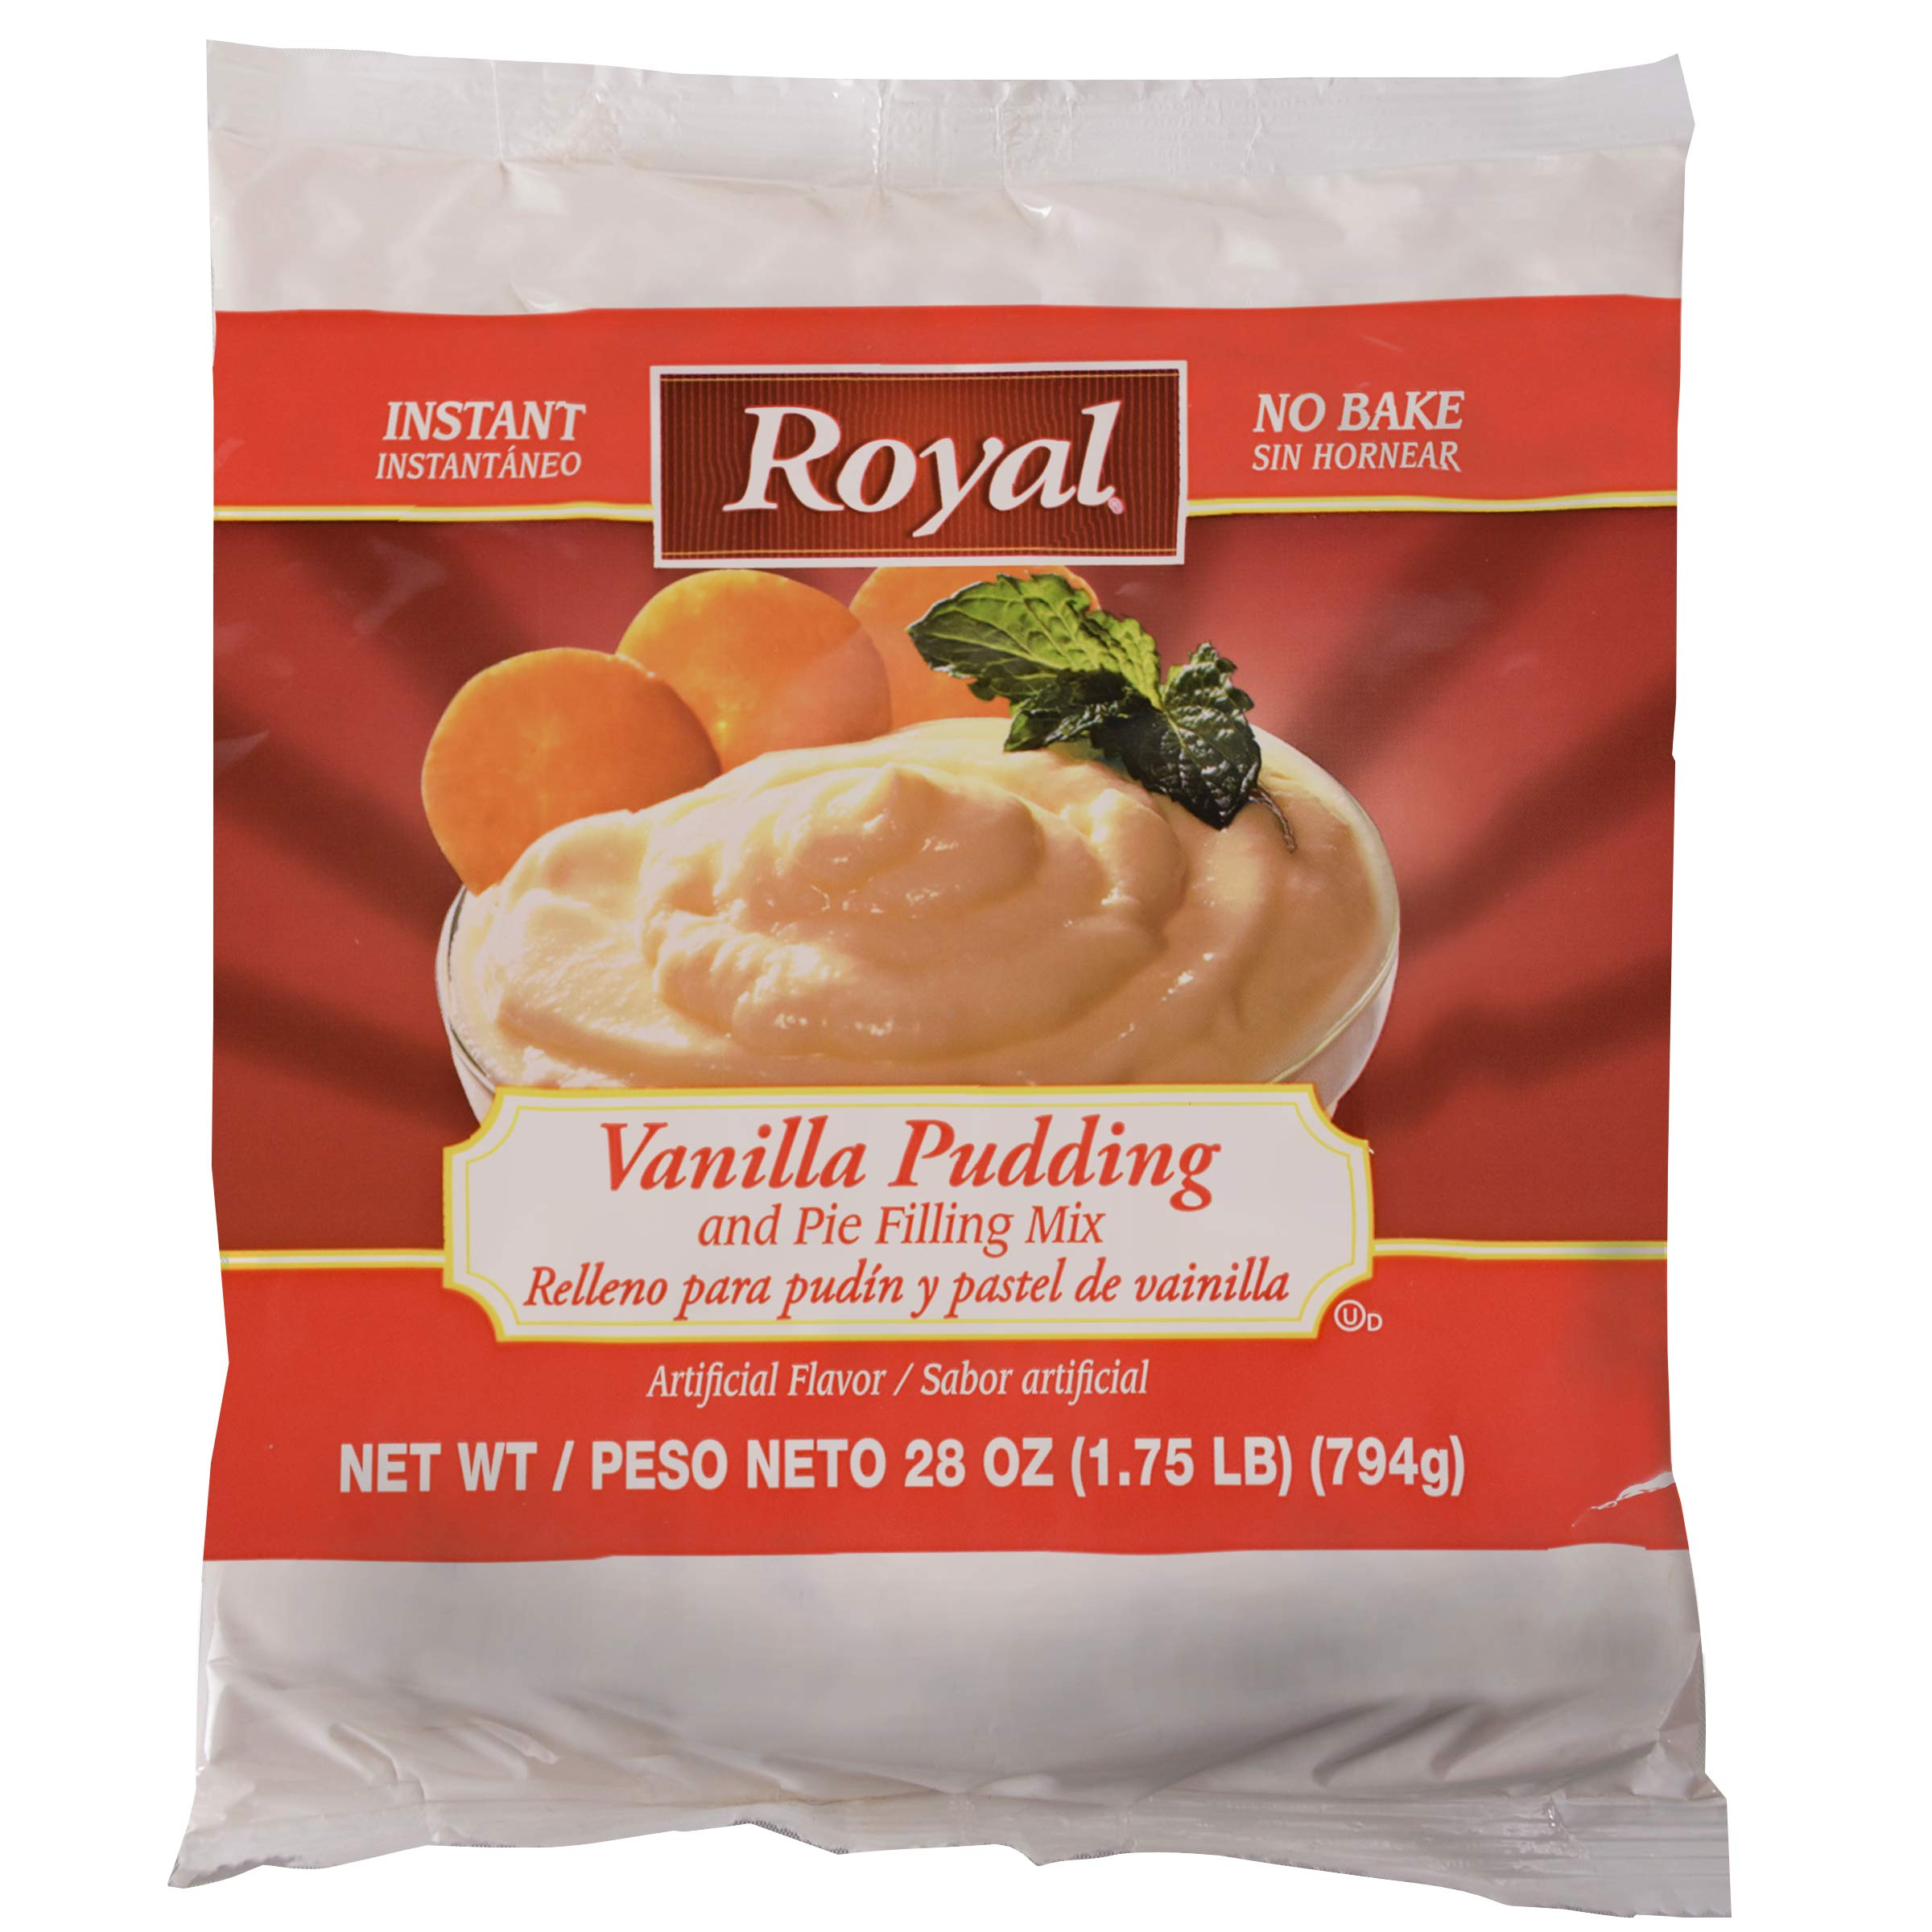 Royal Instant No Bake Vanilla Pudding and Pie Filling 6 pack of 28 ounce bags